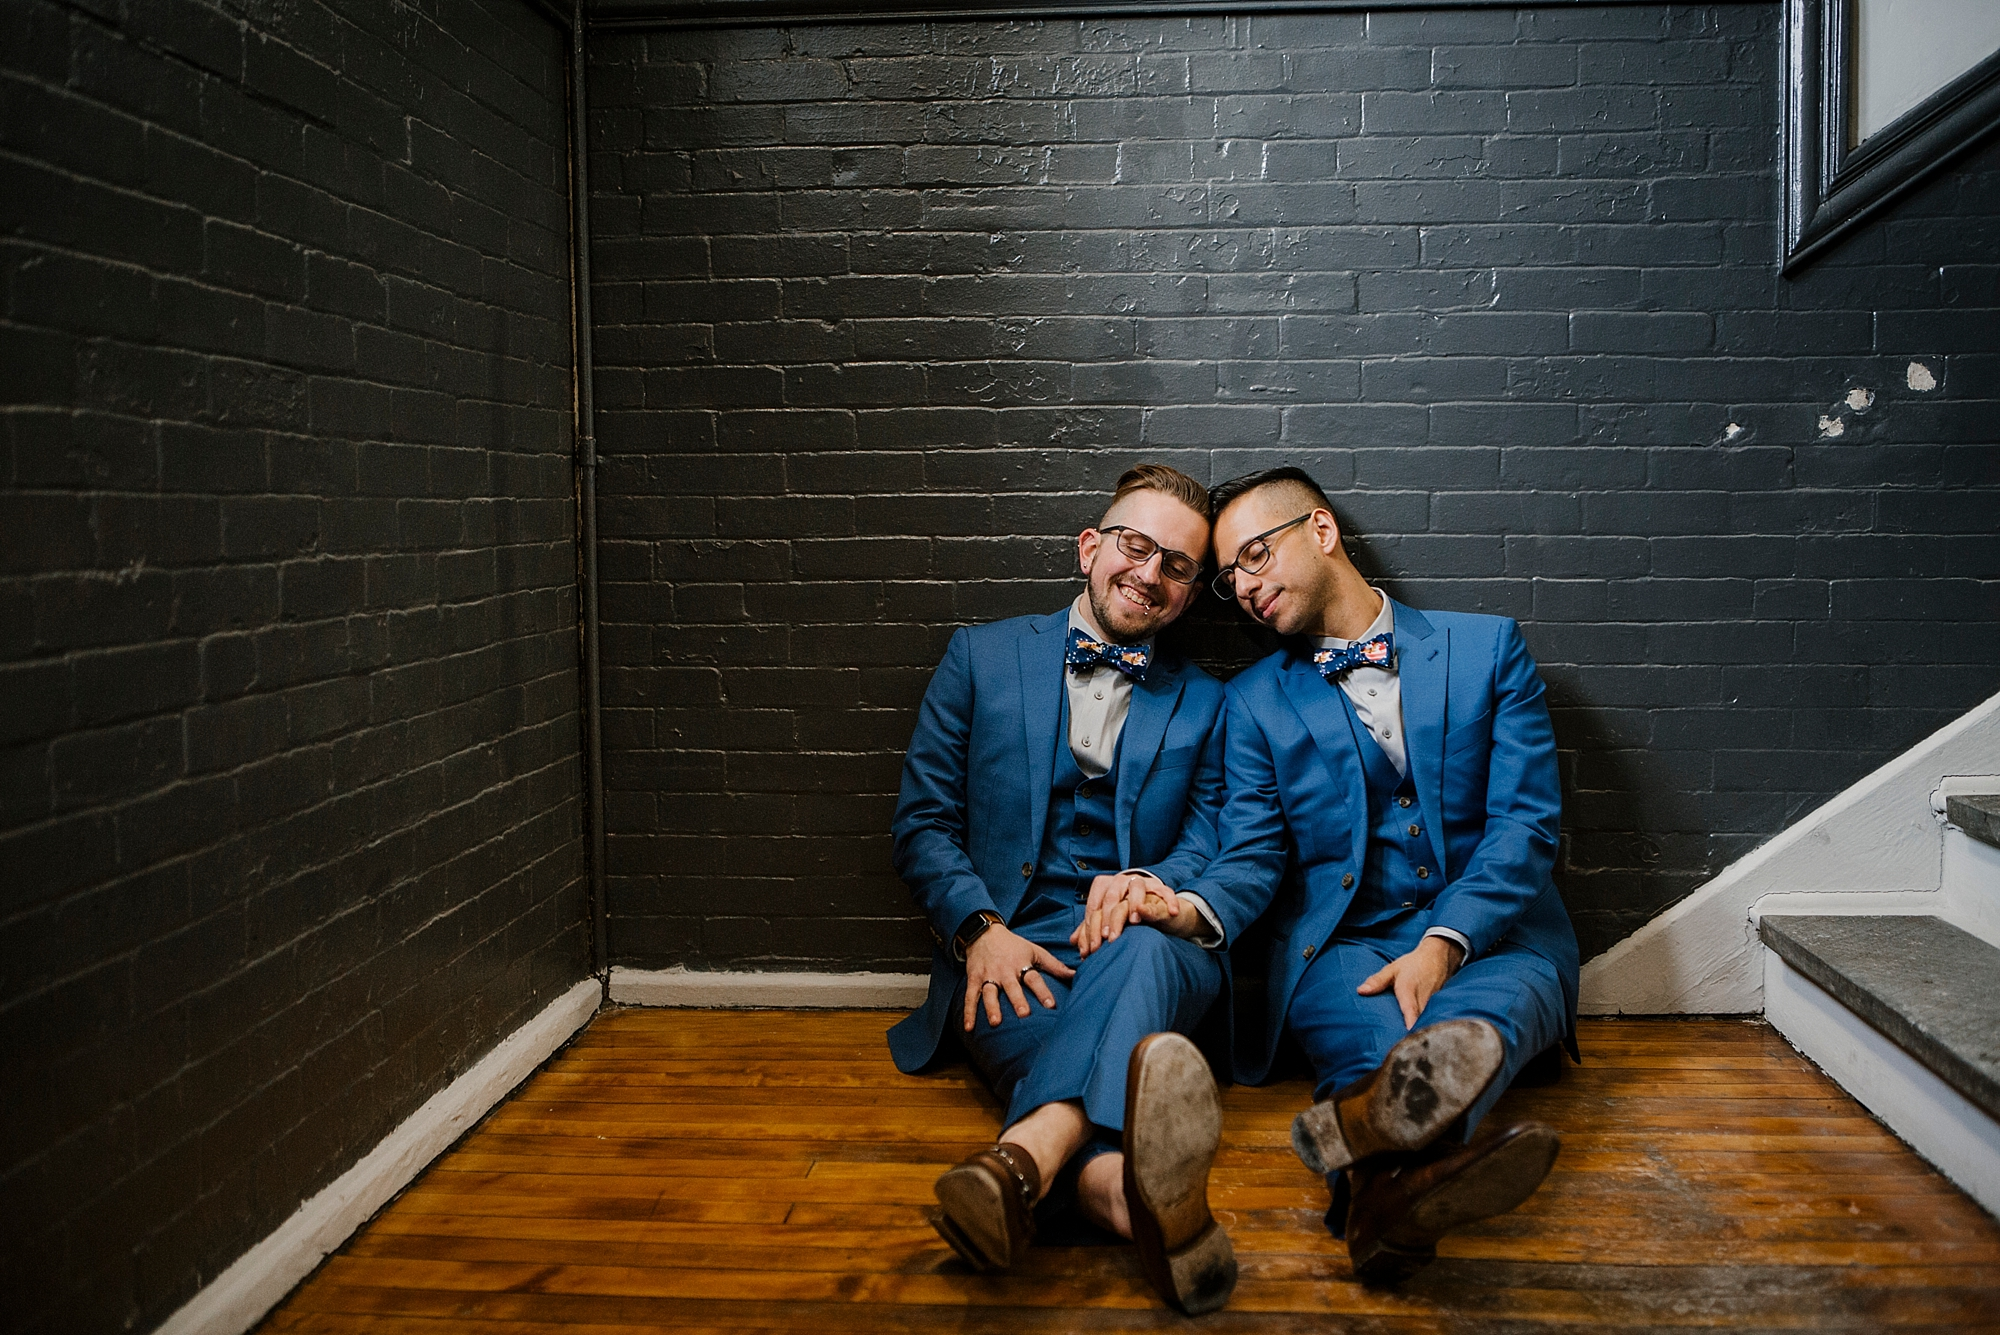 Joe_Mac_Creative_Philadelphia_Philly_LGBT_Gay_Engagement_Wedding_Photography__0110.jpg